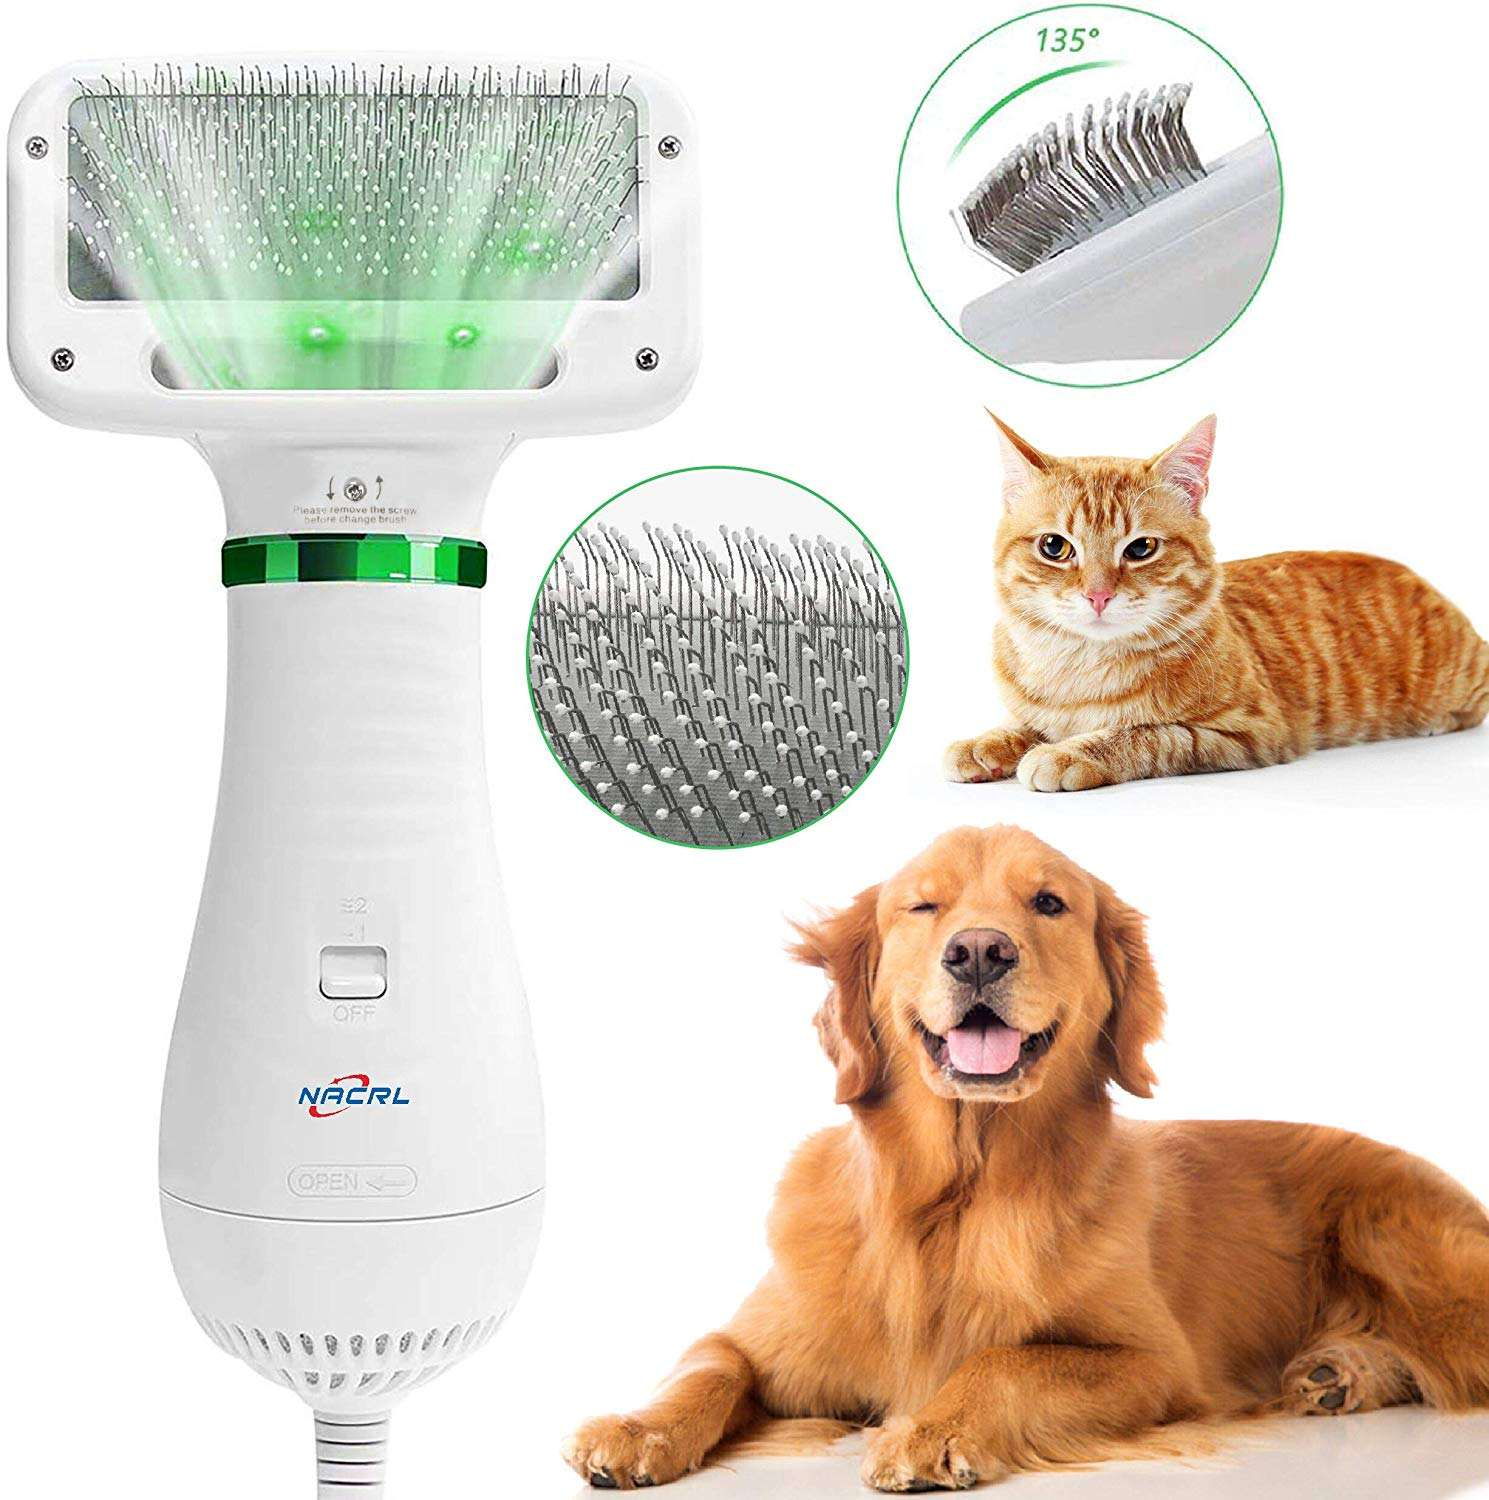 Pet Grooming tool 2 in1 dryer brush dog hair comb brush with 2 gear Temperature for Dogs Cats Home Care Dryer brush